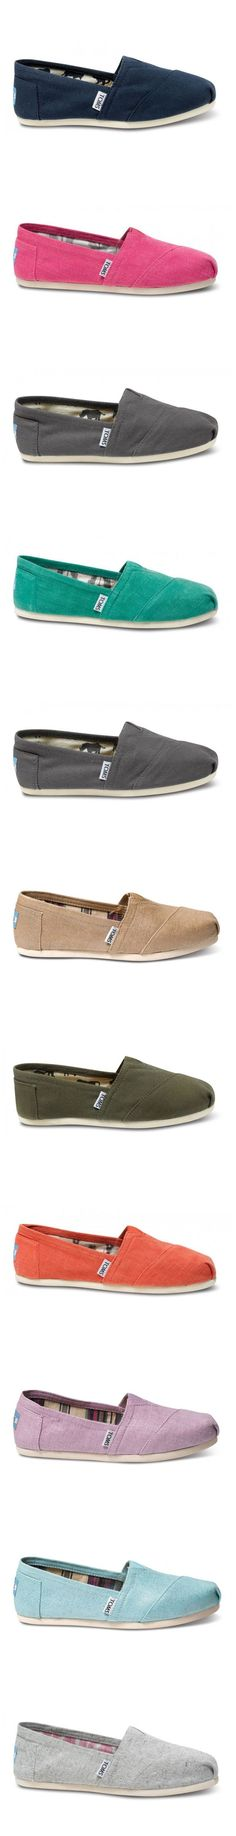 6b8507b11364 Toms shoes are designed in the latest style and the match of color will  attract your eye sight wherever they are .